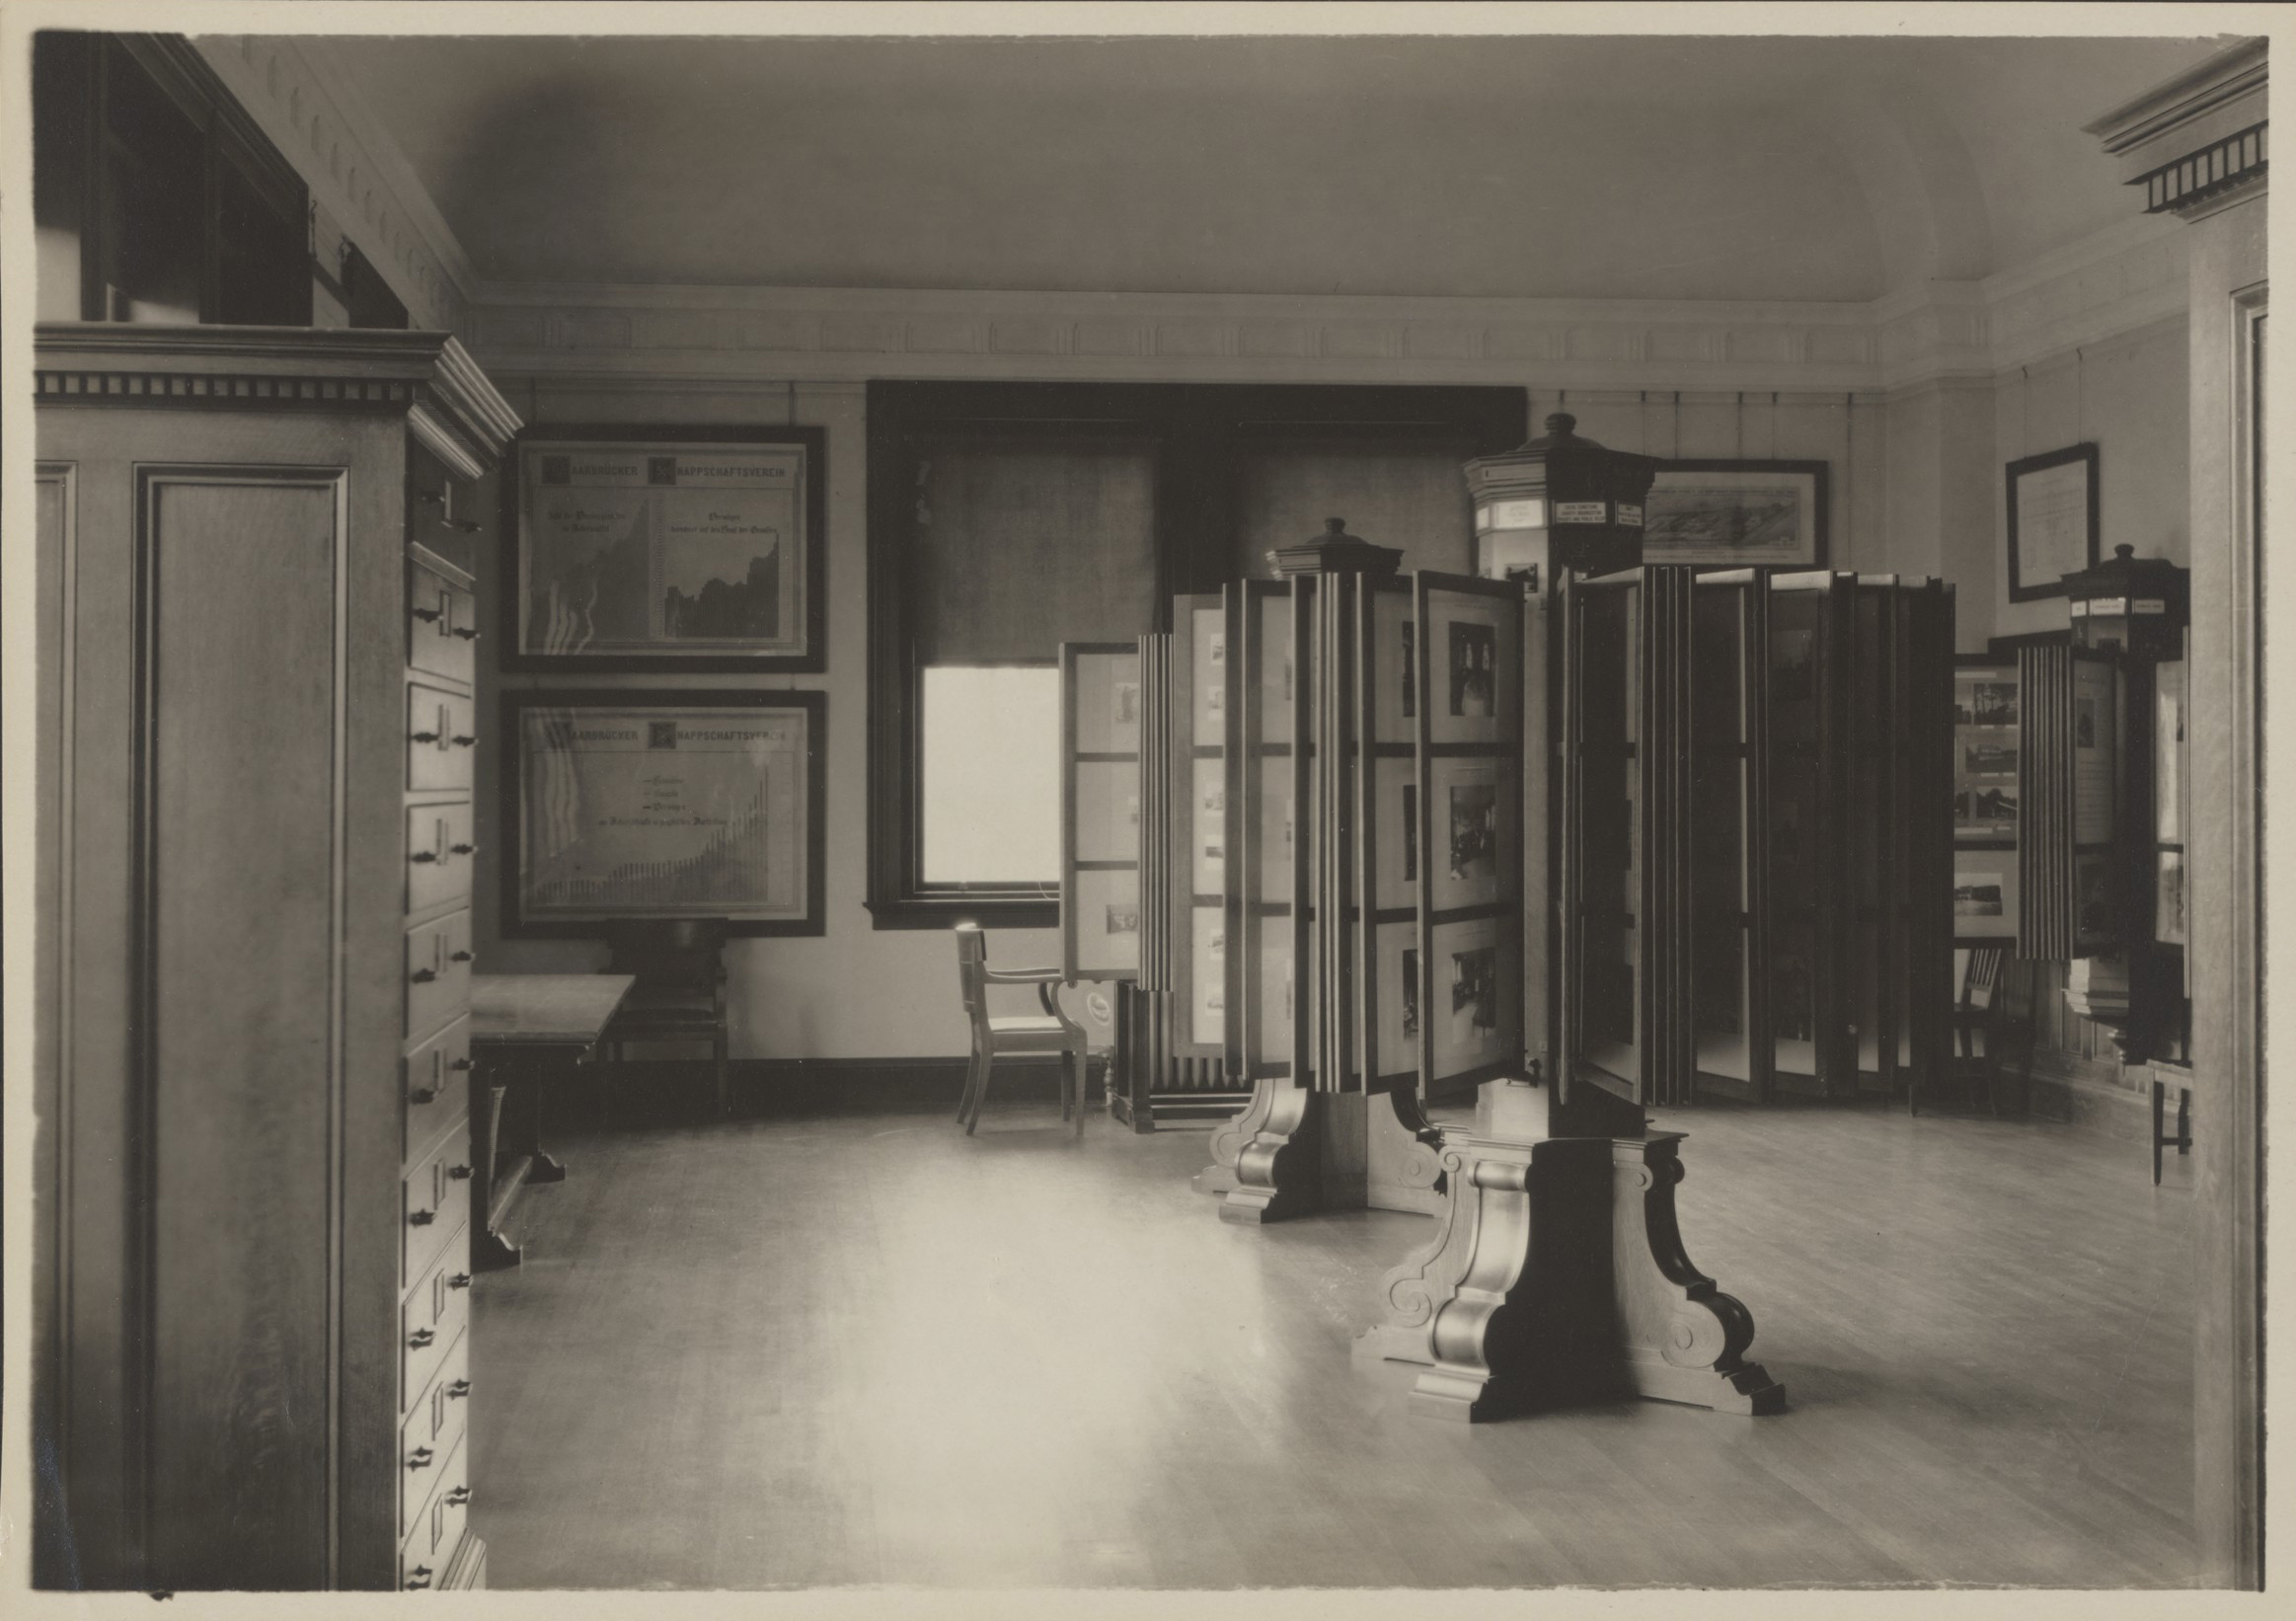 This black and white photograph shows a room with a wooden floor. In the foreground at left is a bureau with several drawers. In the center of the room is a wooden stand with an ornate base. Above the base is a rotating display of photographs. There is another just like it partially visible. Several large framed diagrams and photographs line the walls.